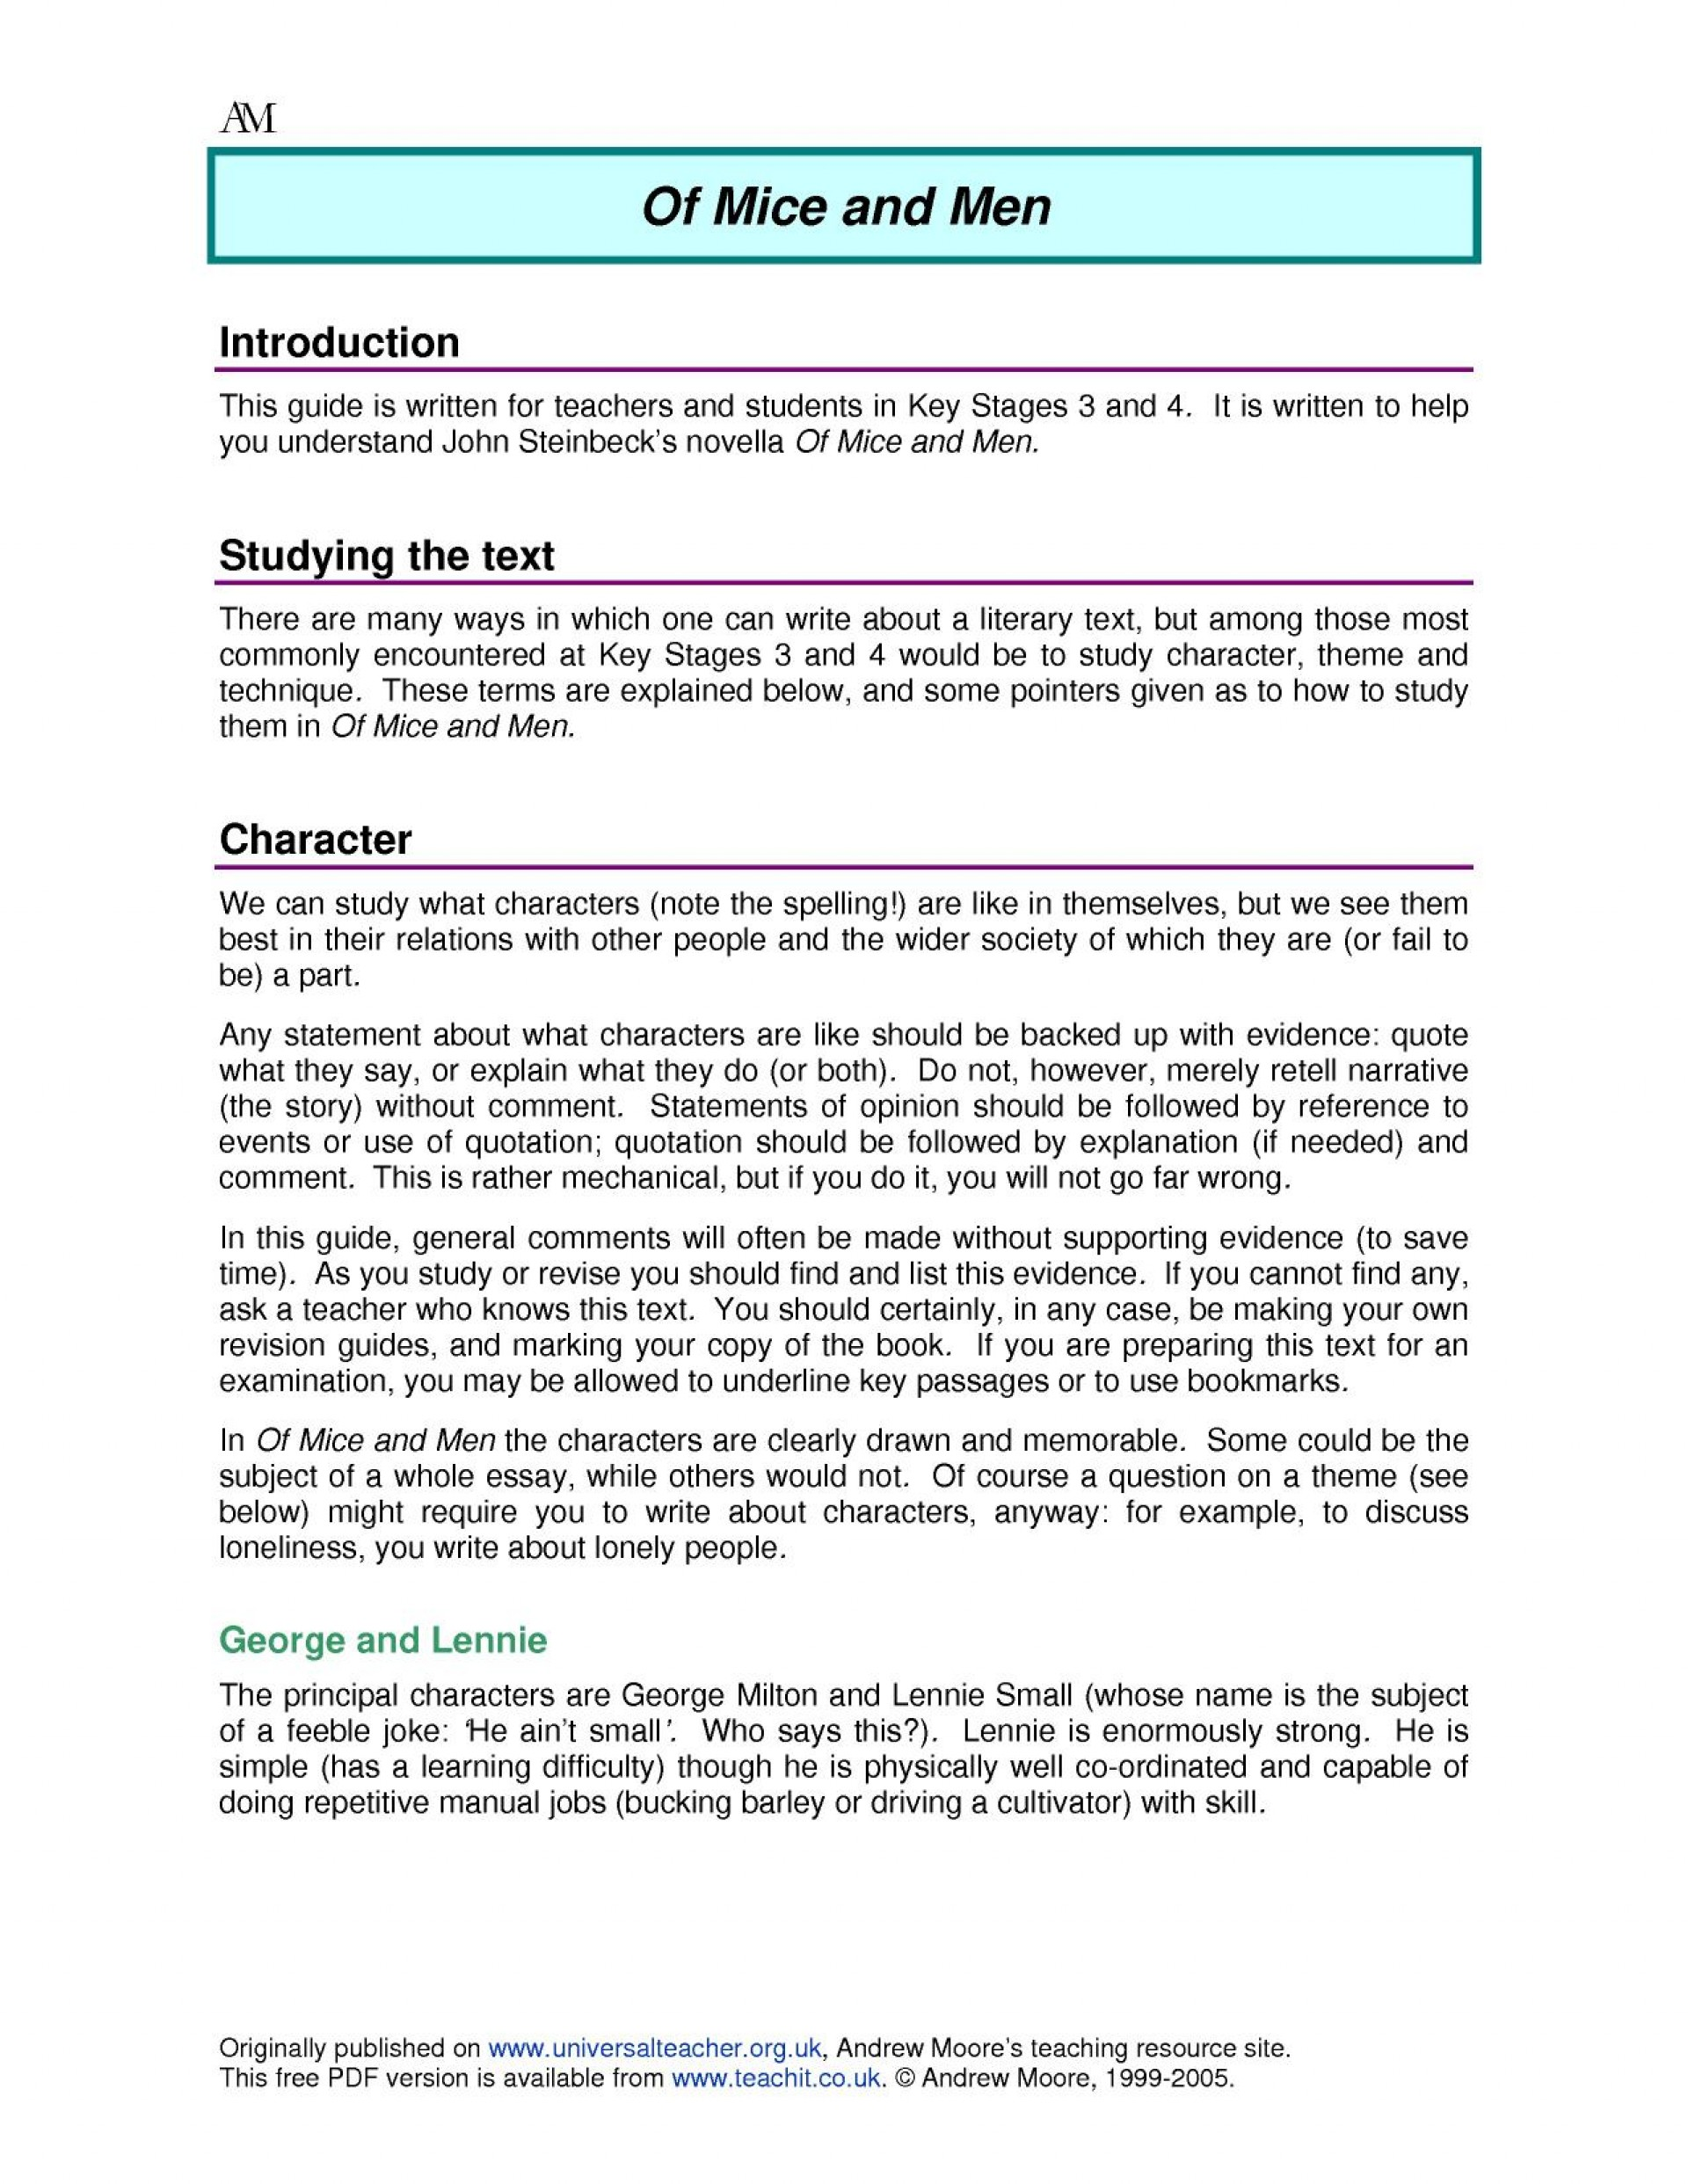 004 Essay Example How To Write An On Characterization Lesson Plan Writing Outlining Analysis X Characters Paper Astounding A Research 1920